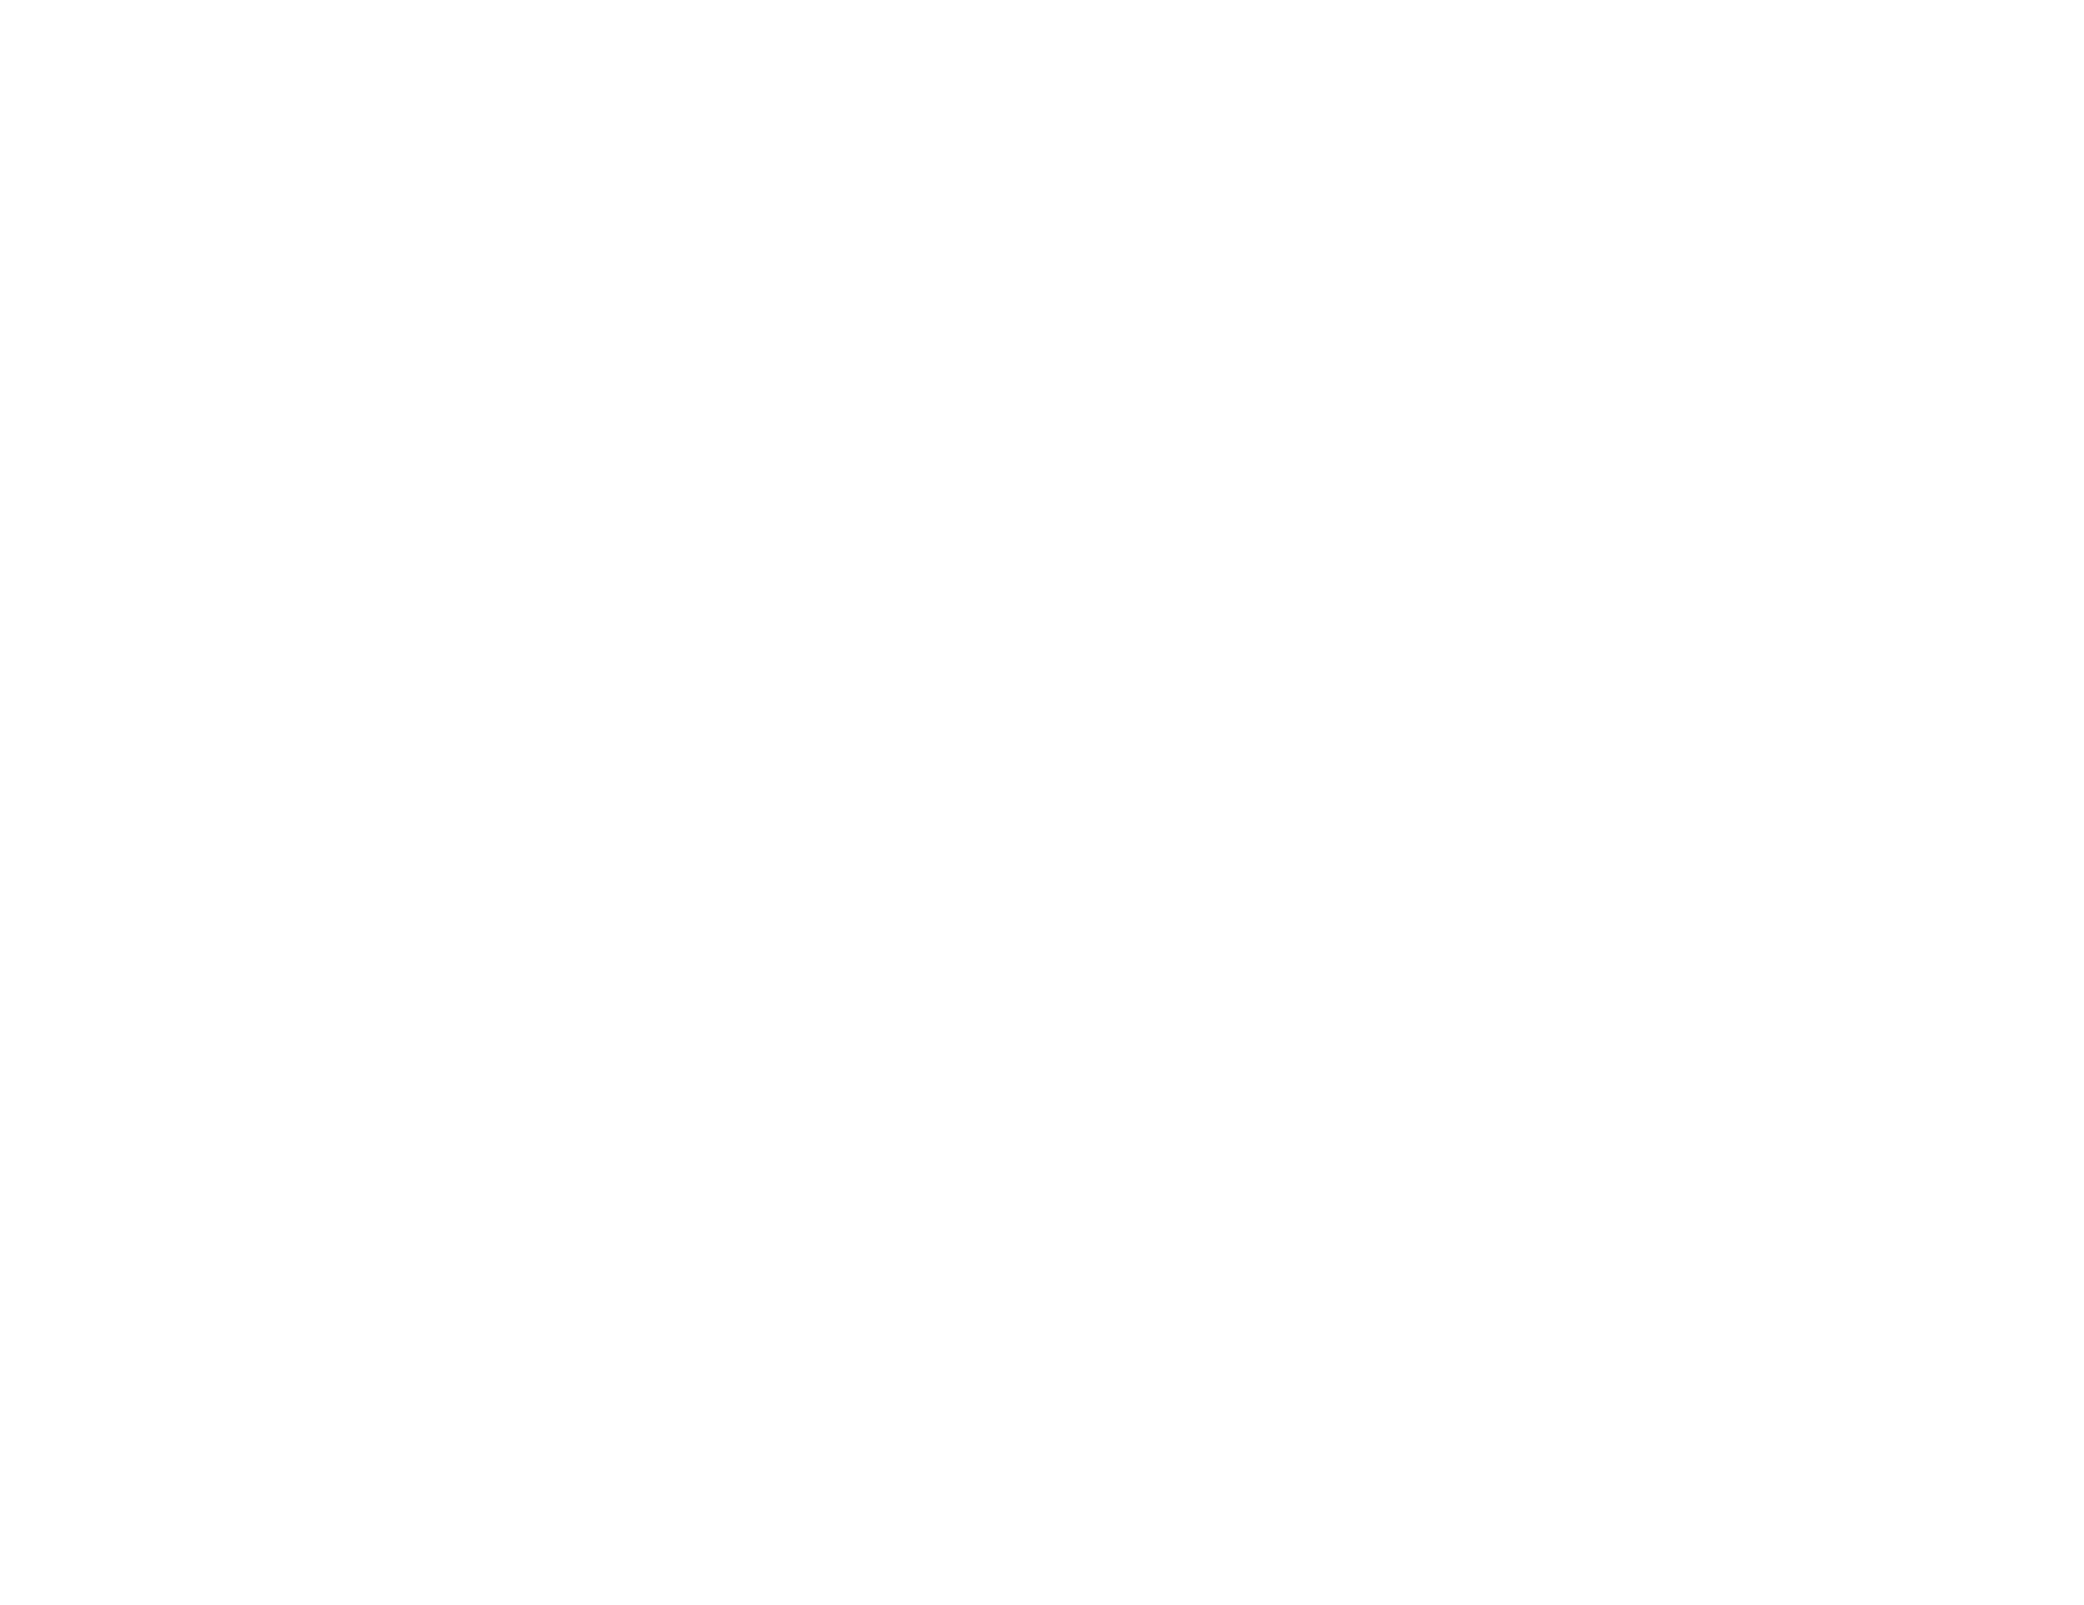 legacy-01.png